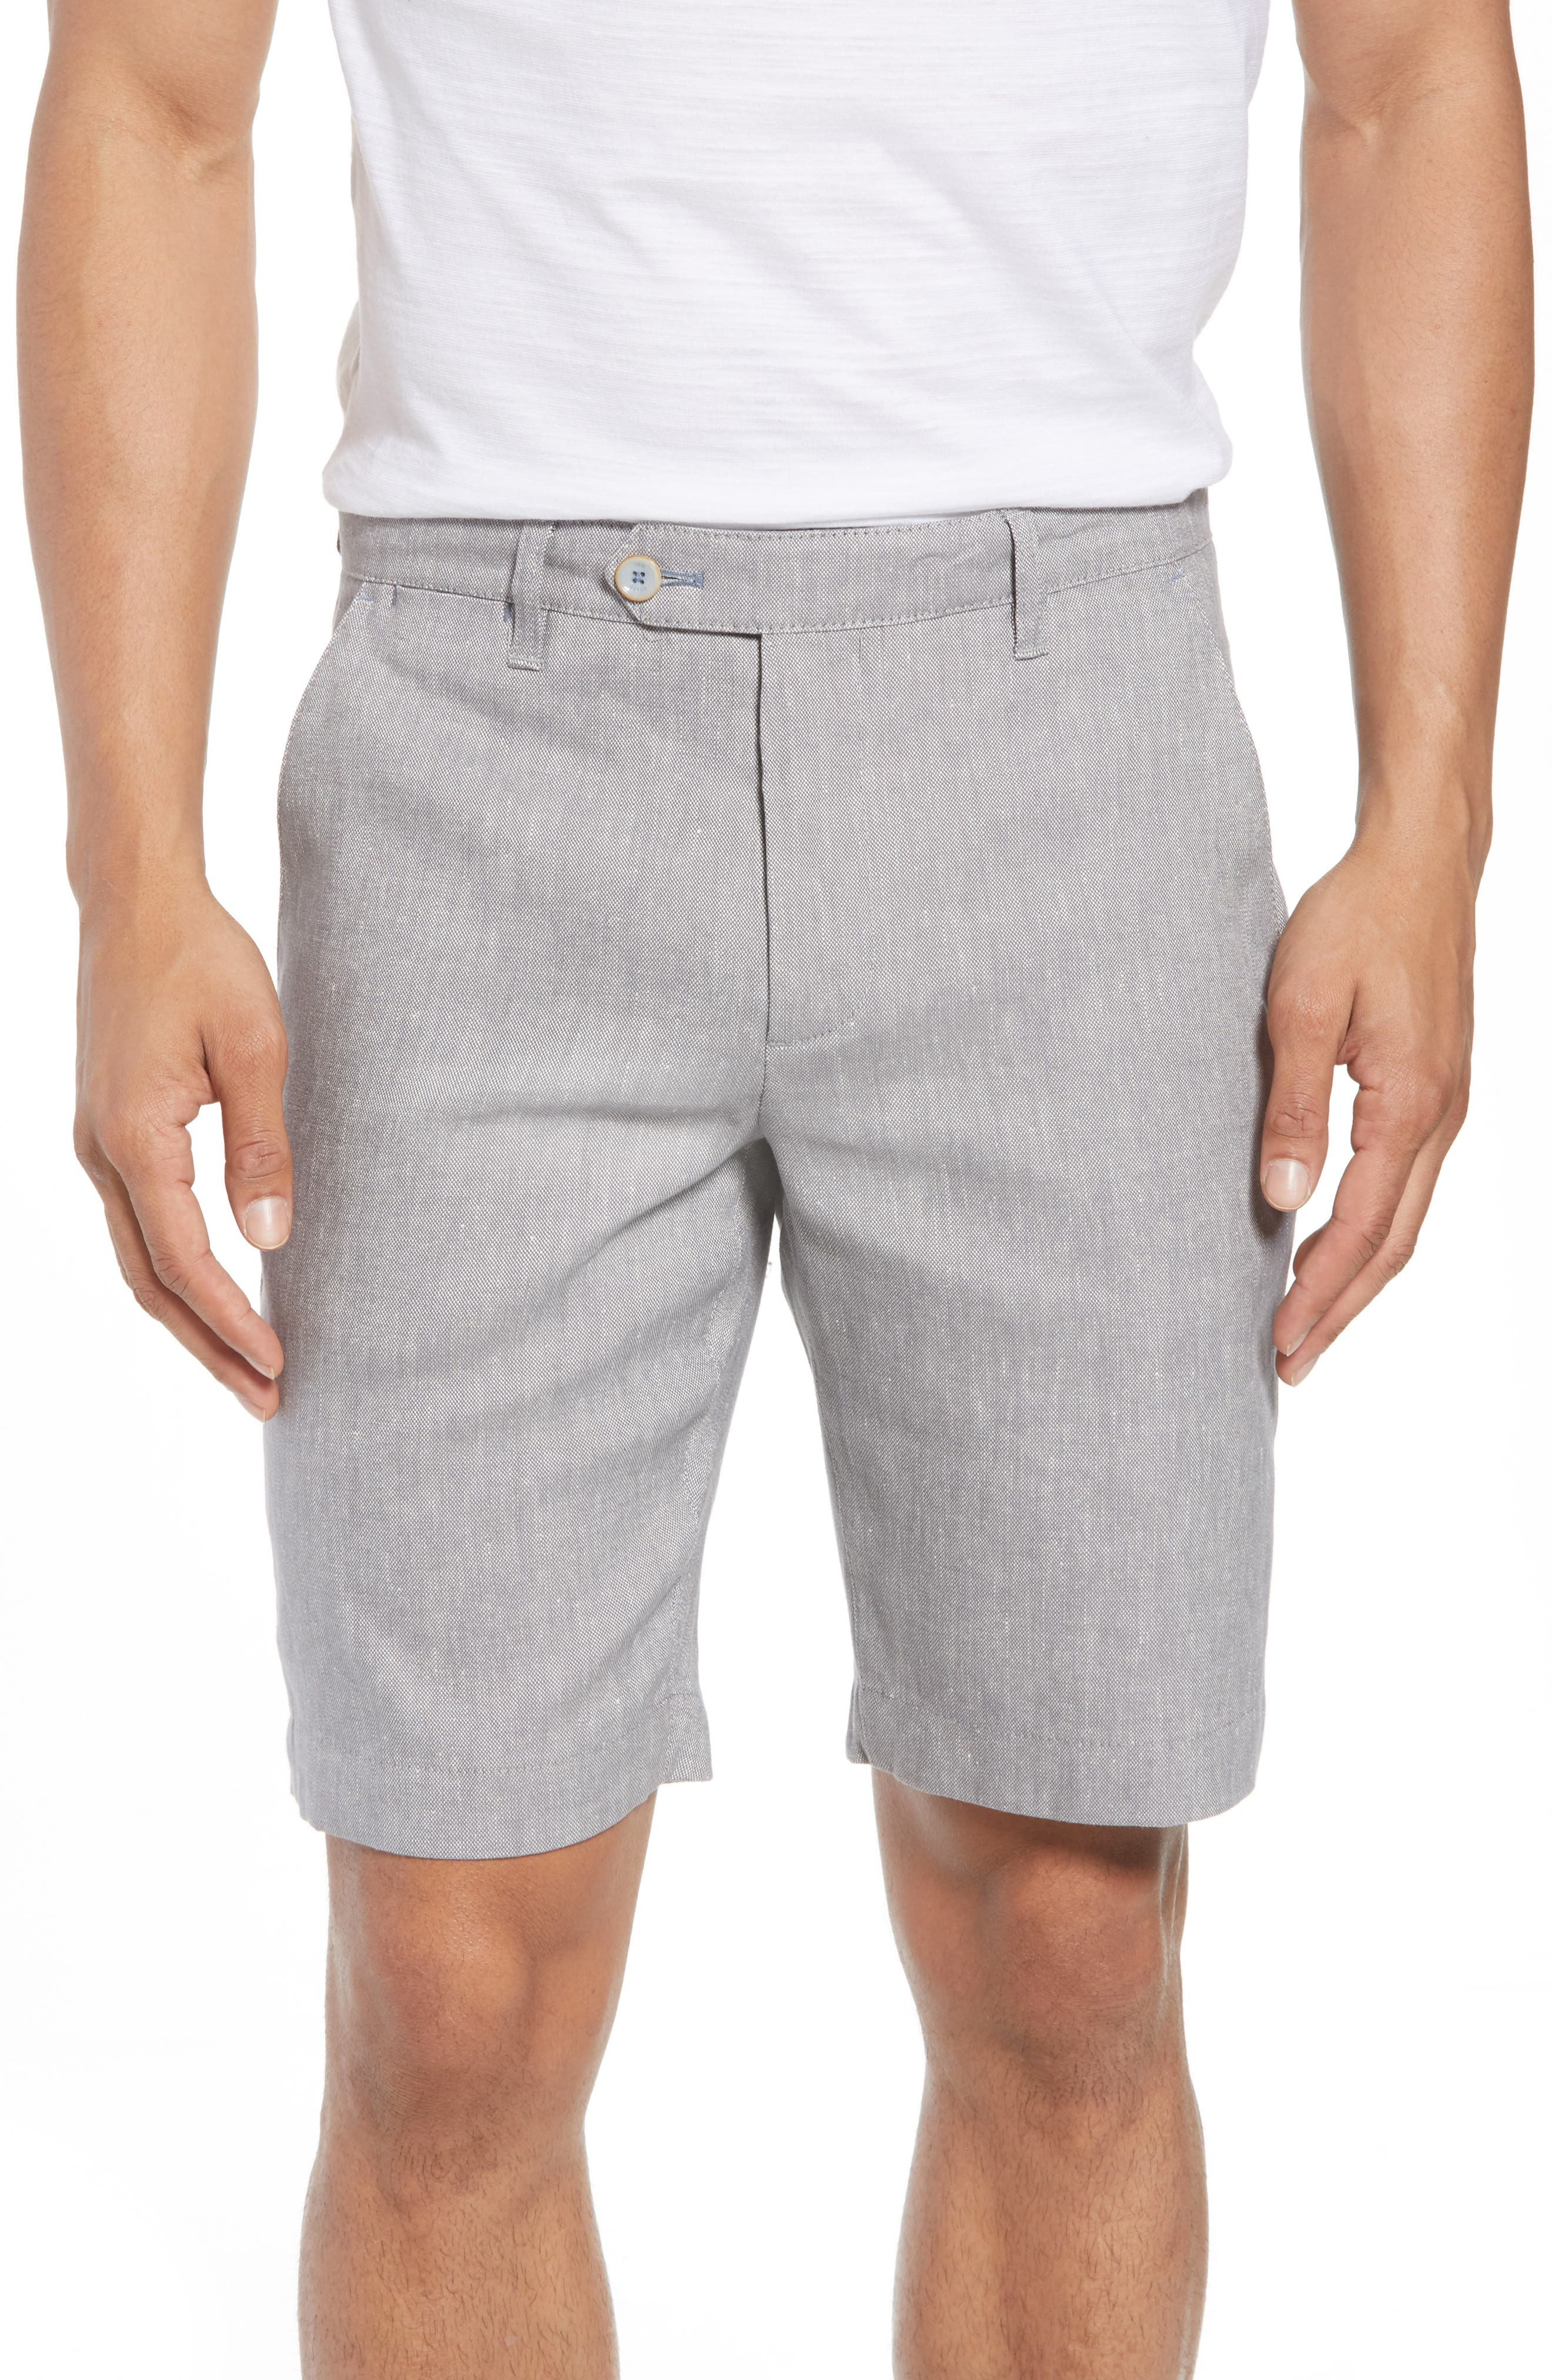 Newshow Flat Front Stretch Cotton Blend Shorts,                         Main,                         color, 050